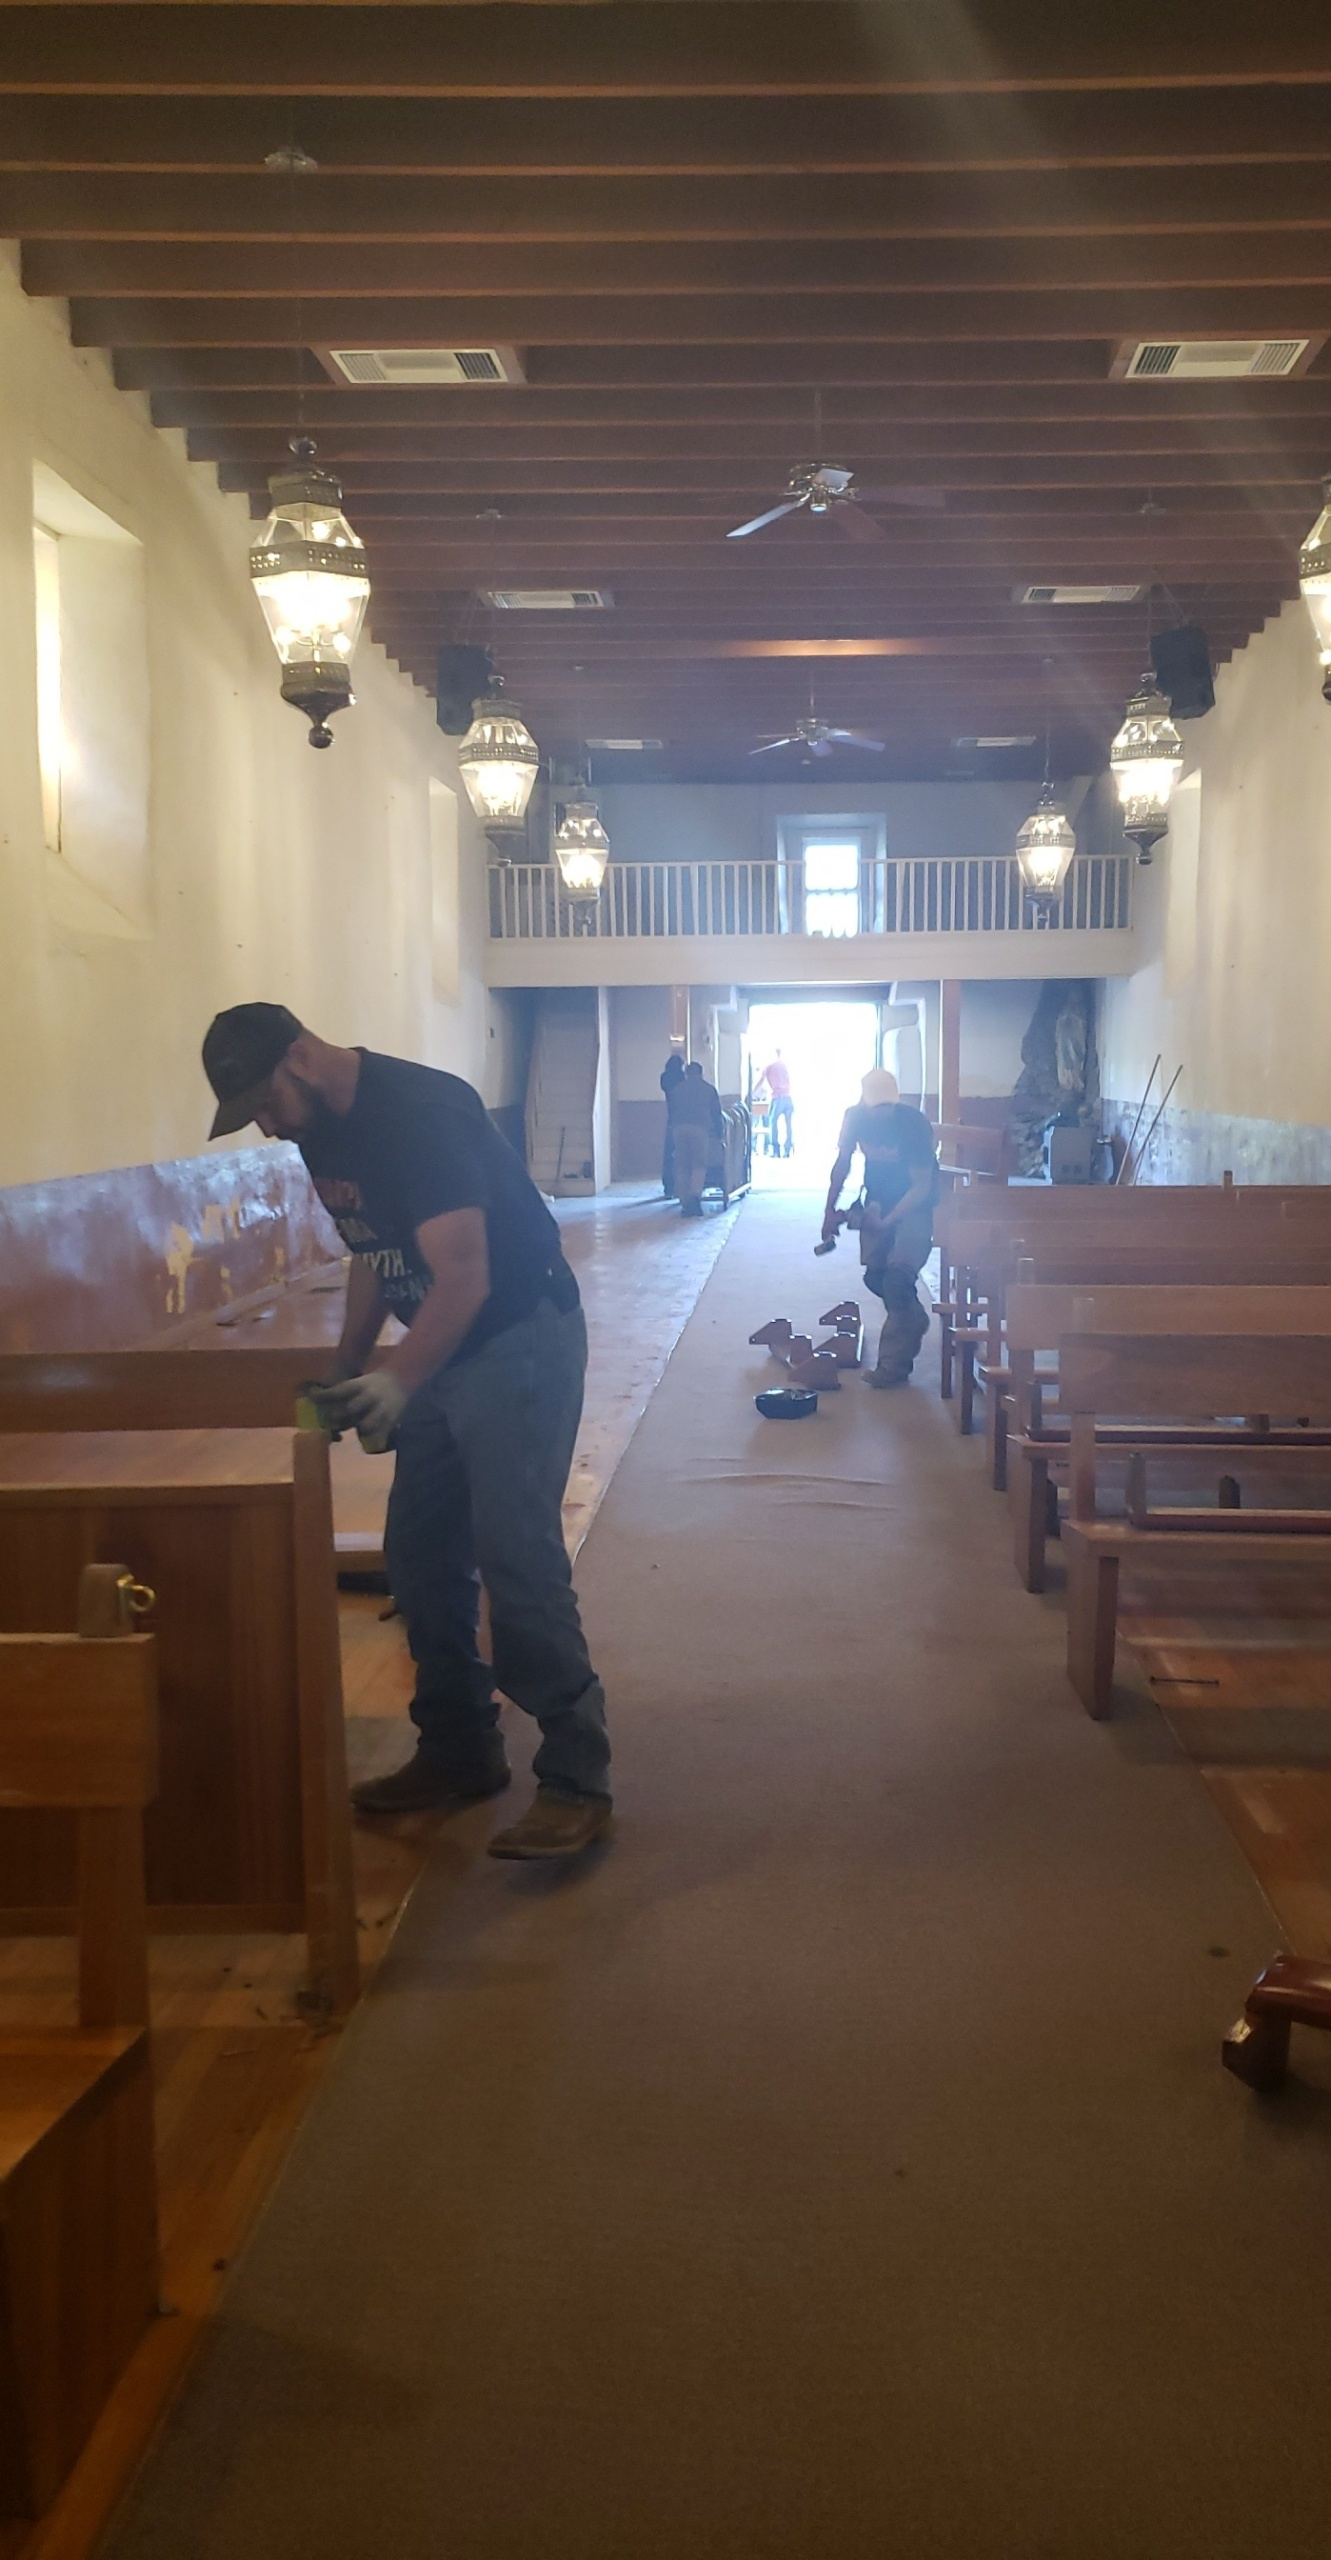 Preparing the Church for Demolition of Old Floor